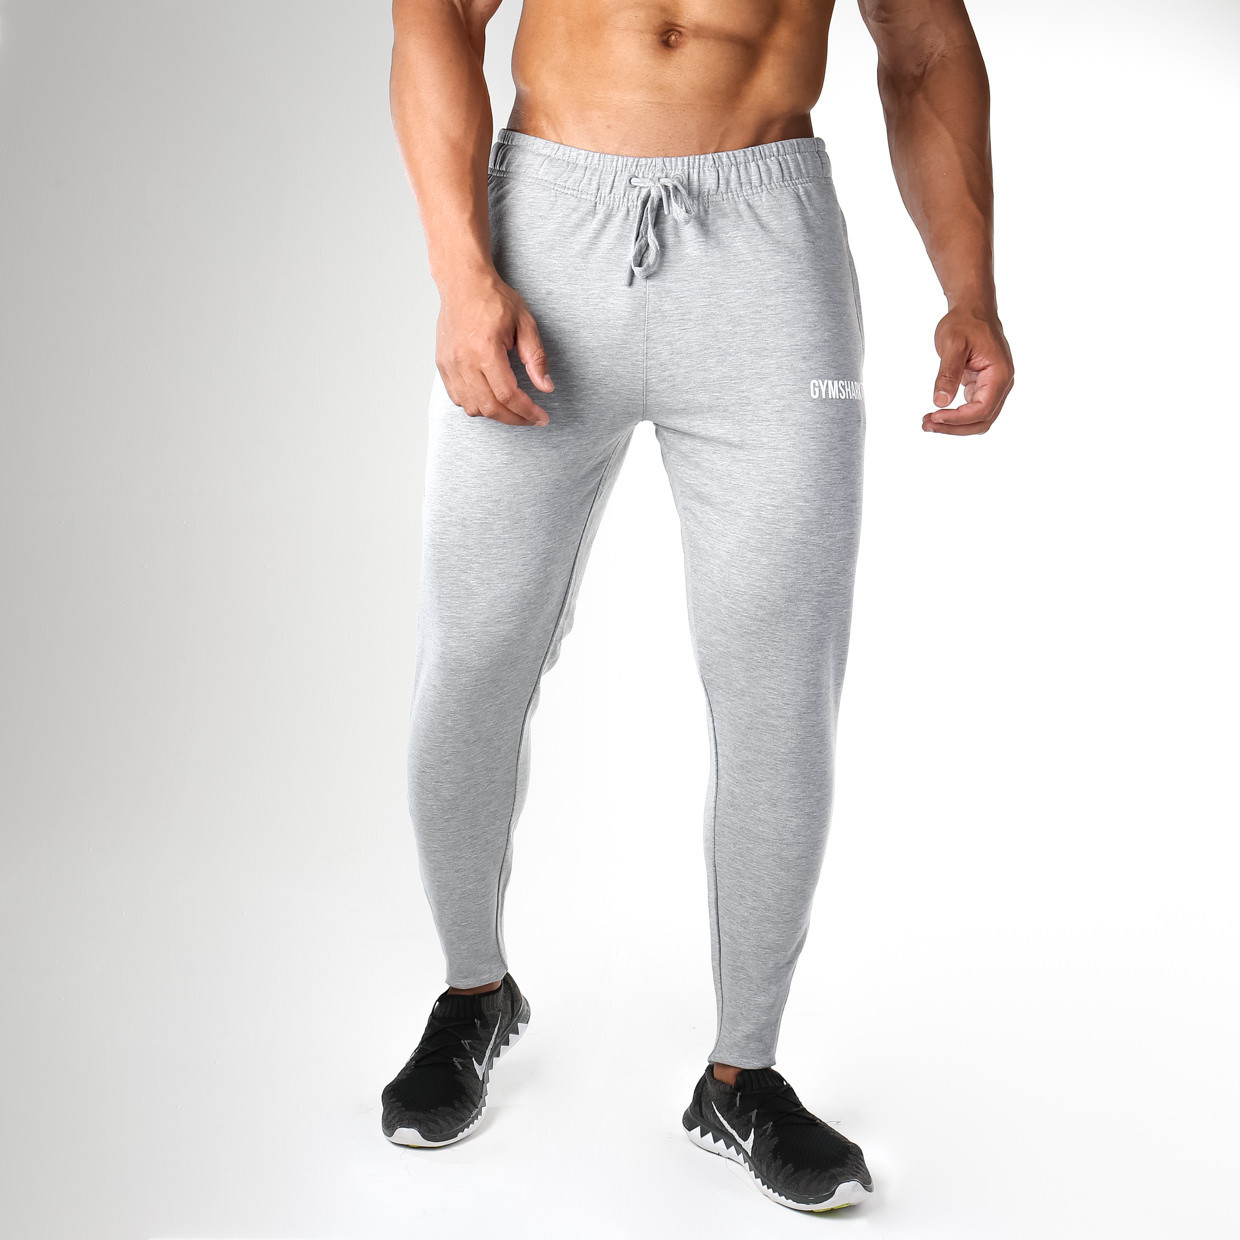 Gymshark Fit Tapered Bottoms in Light Grey